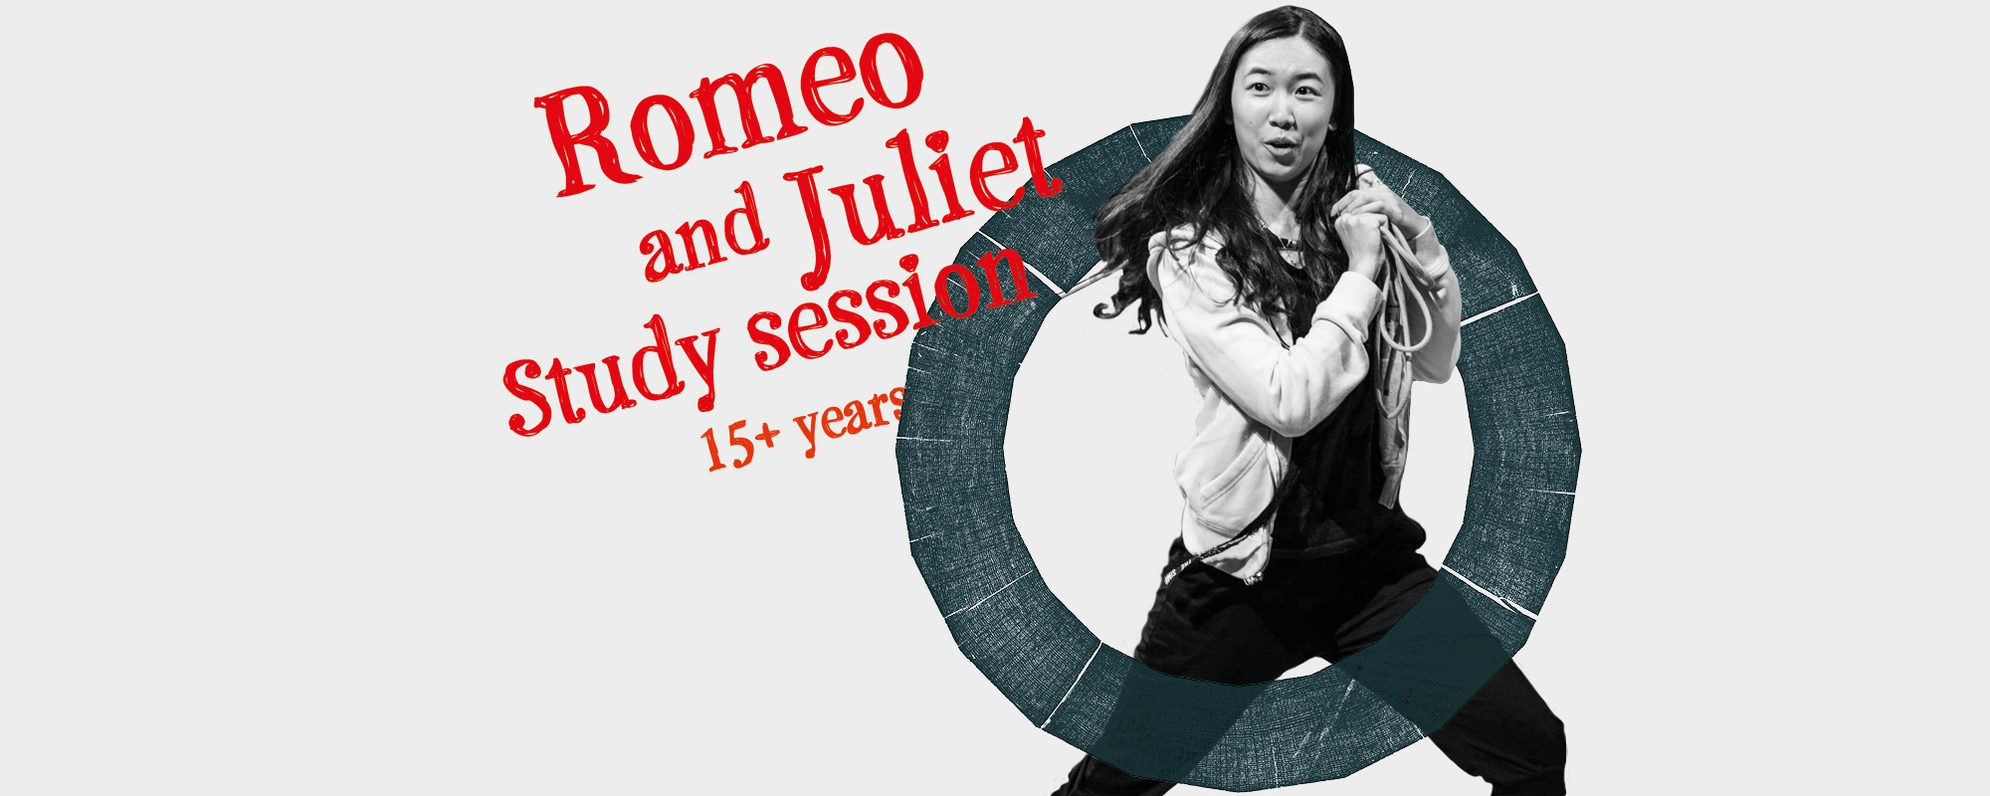 Text: Romeo and Juliet Study Session 15+ years, image a young woman leans holding a rope